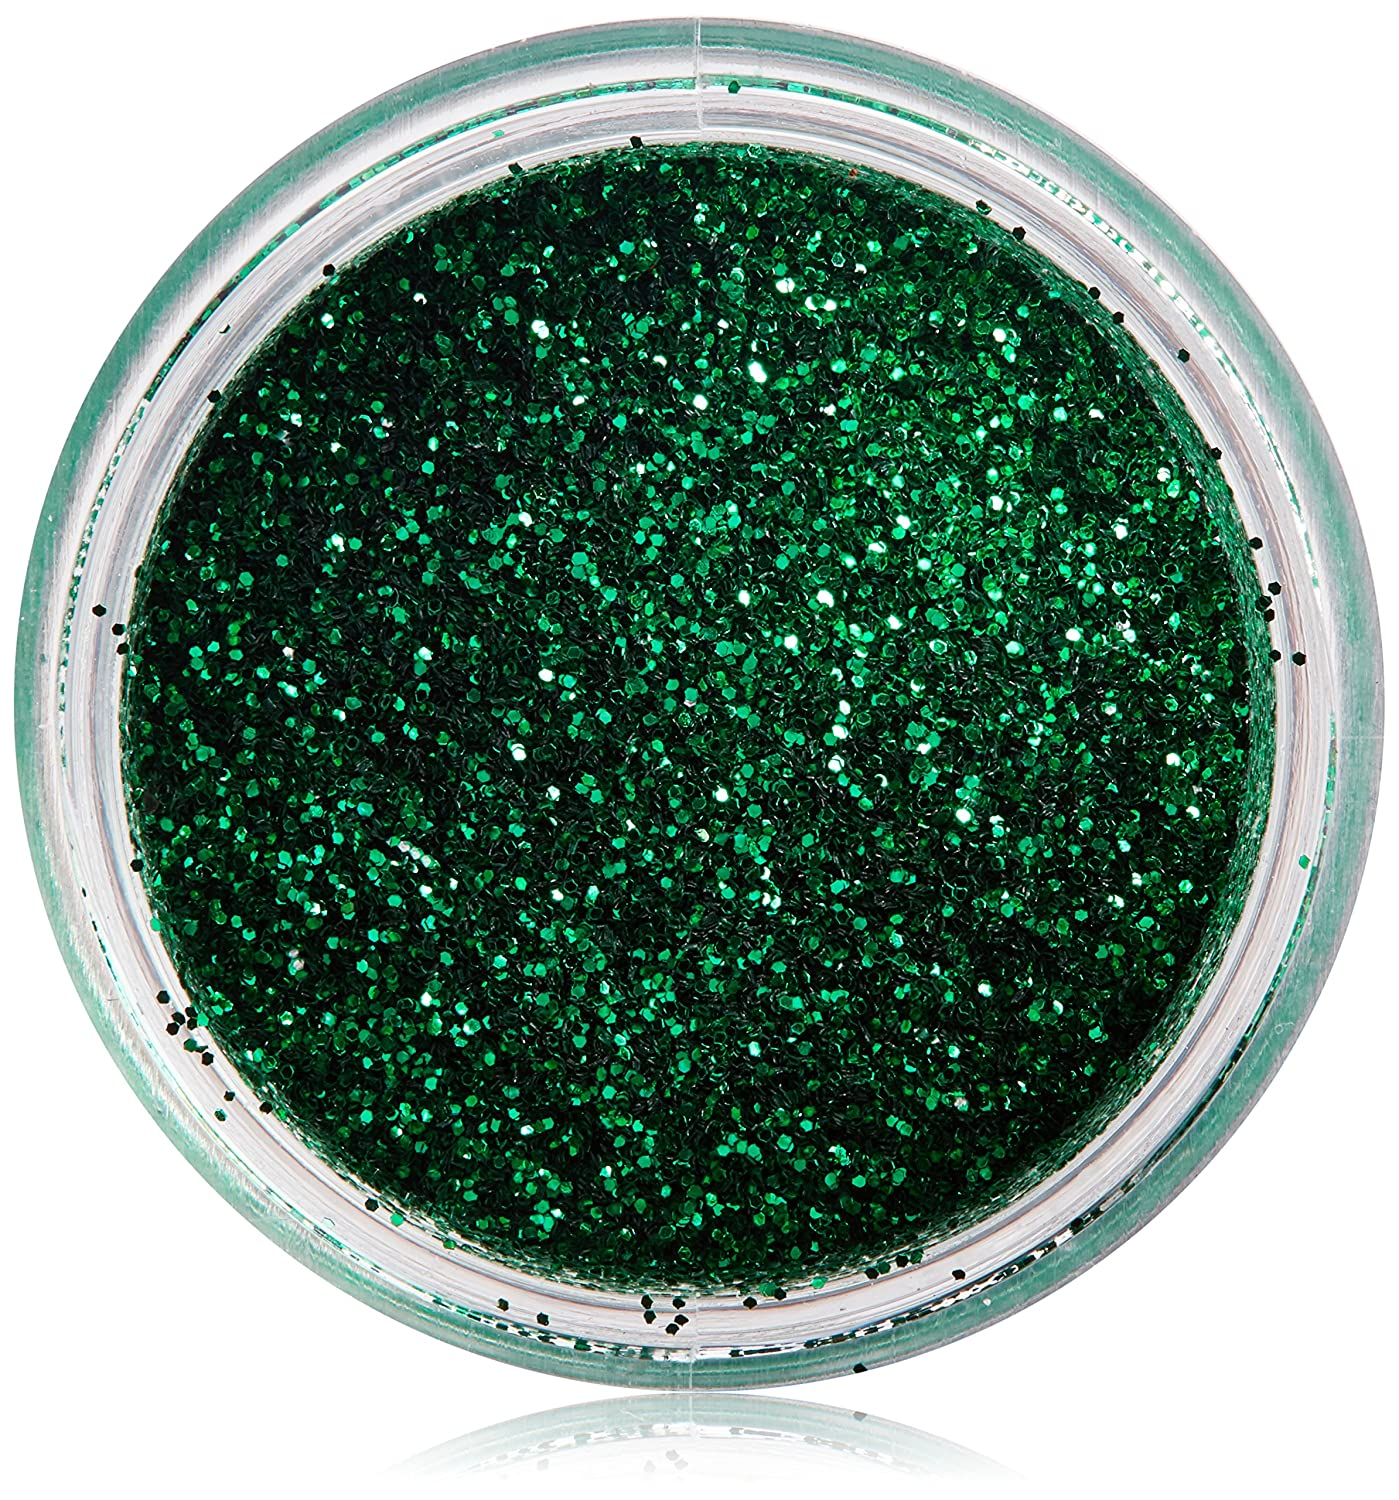 Royal Care Cosmetics Medium Green Glitter #13, 2 Oz RCegl13